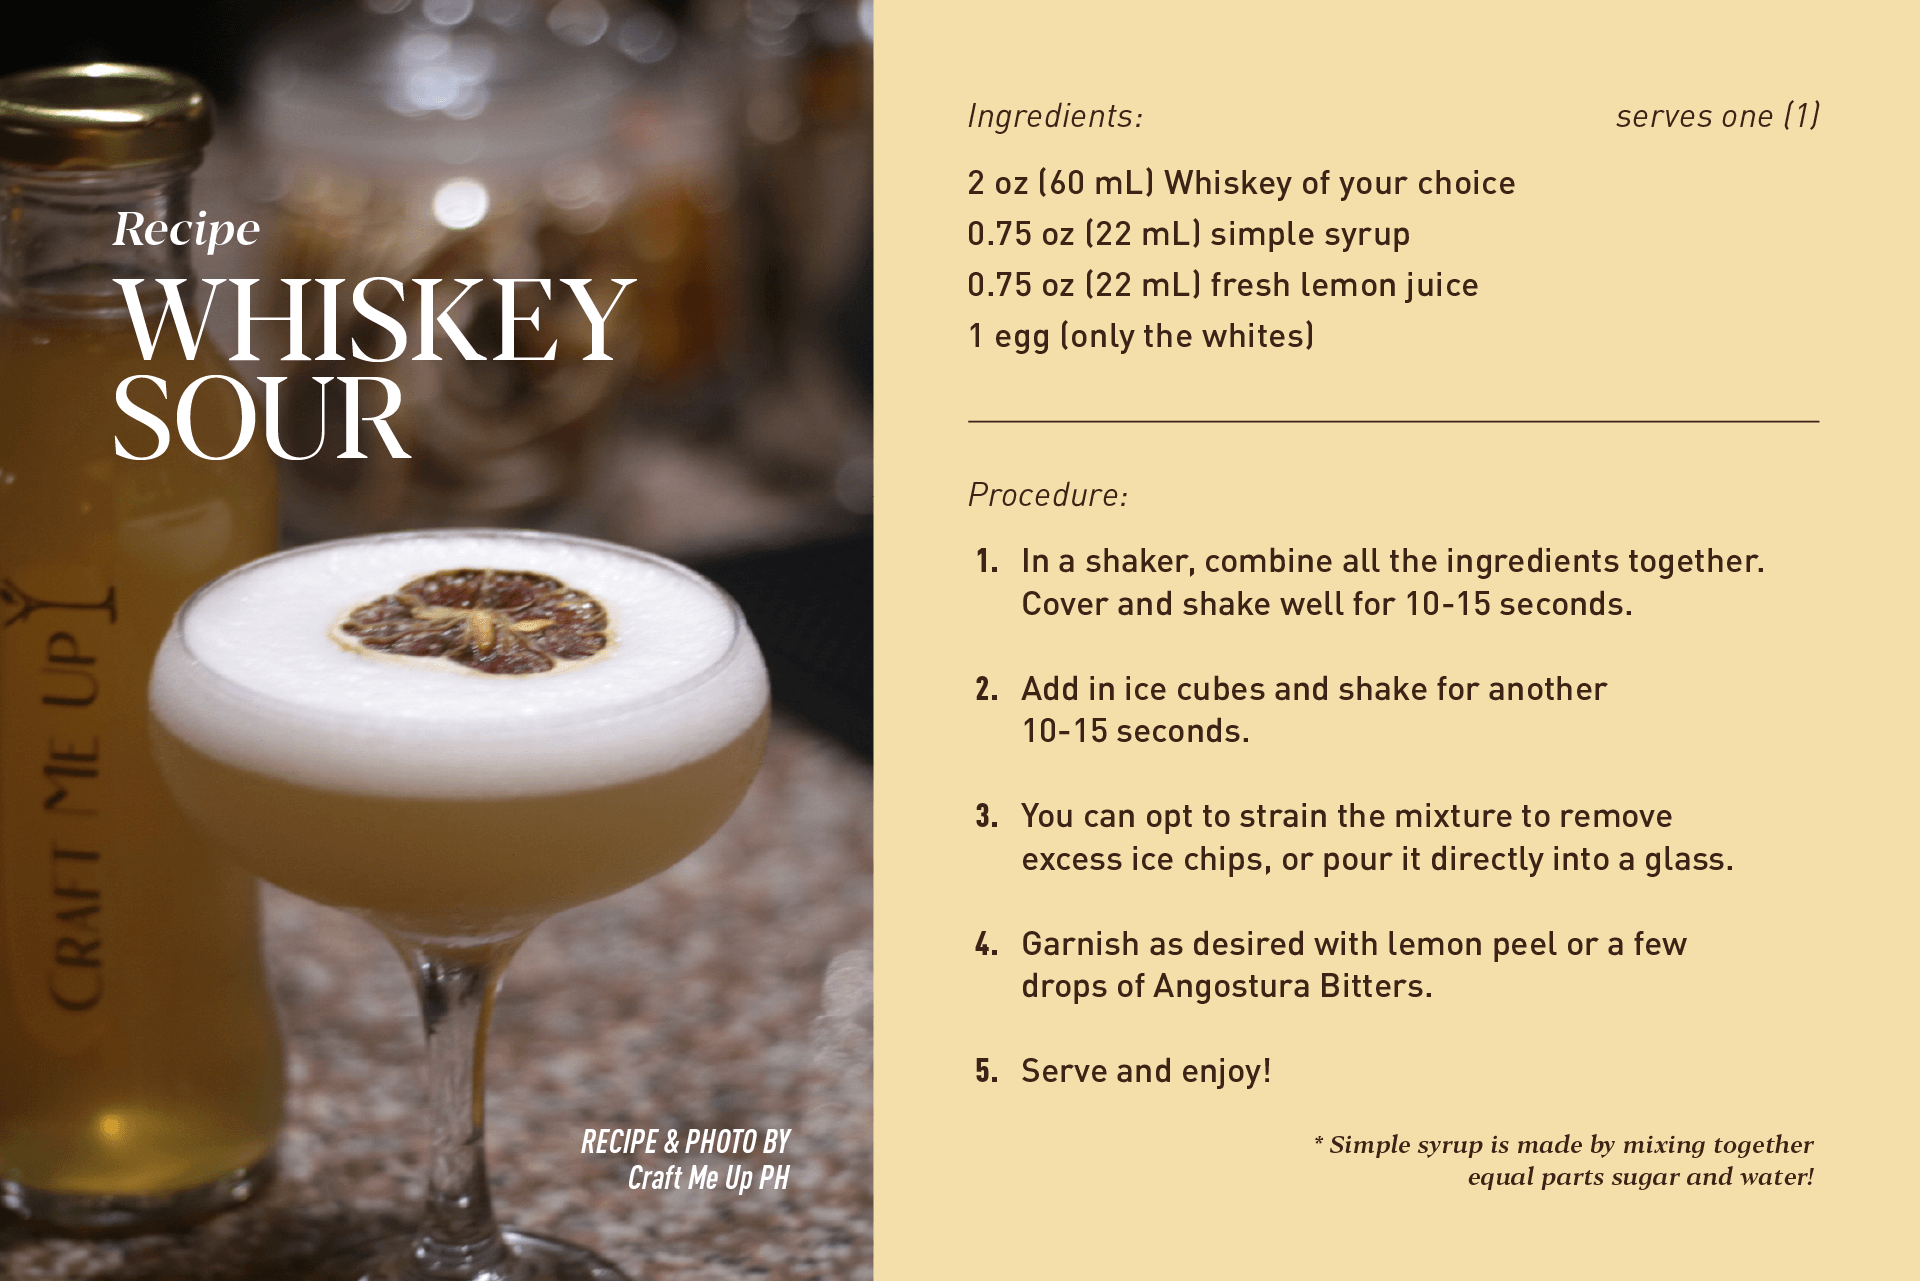 Recipe: Whiskey Sour by Craft Me Up PH